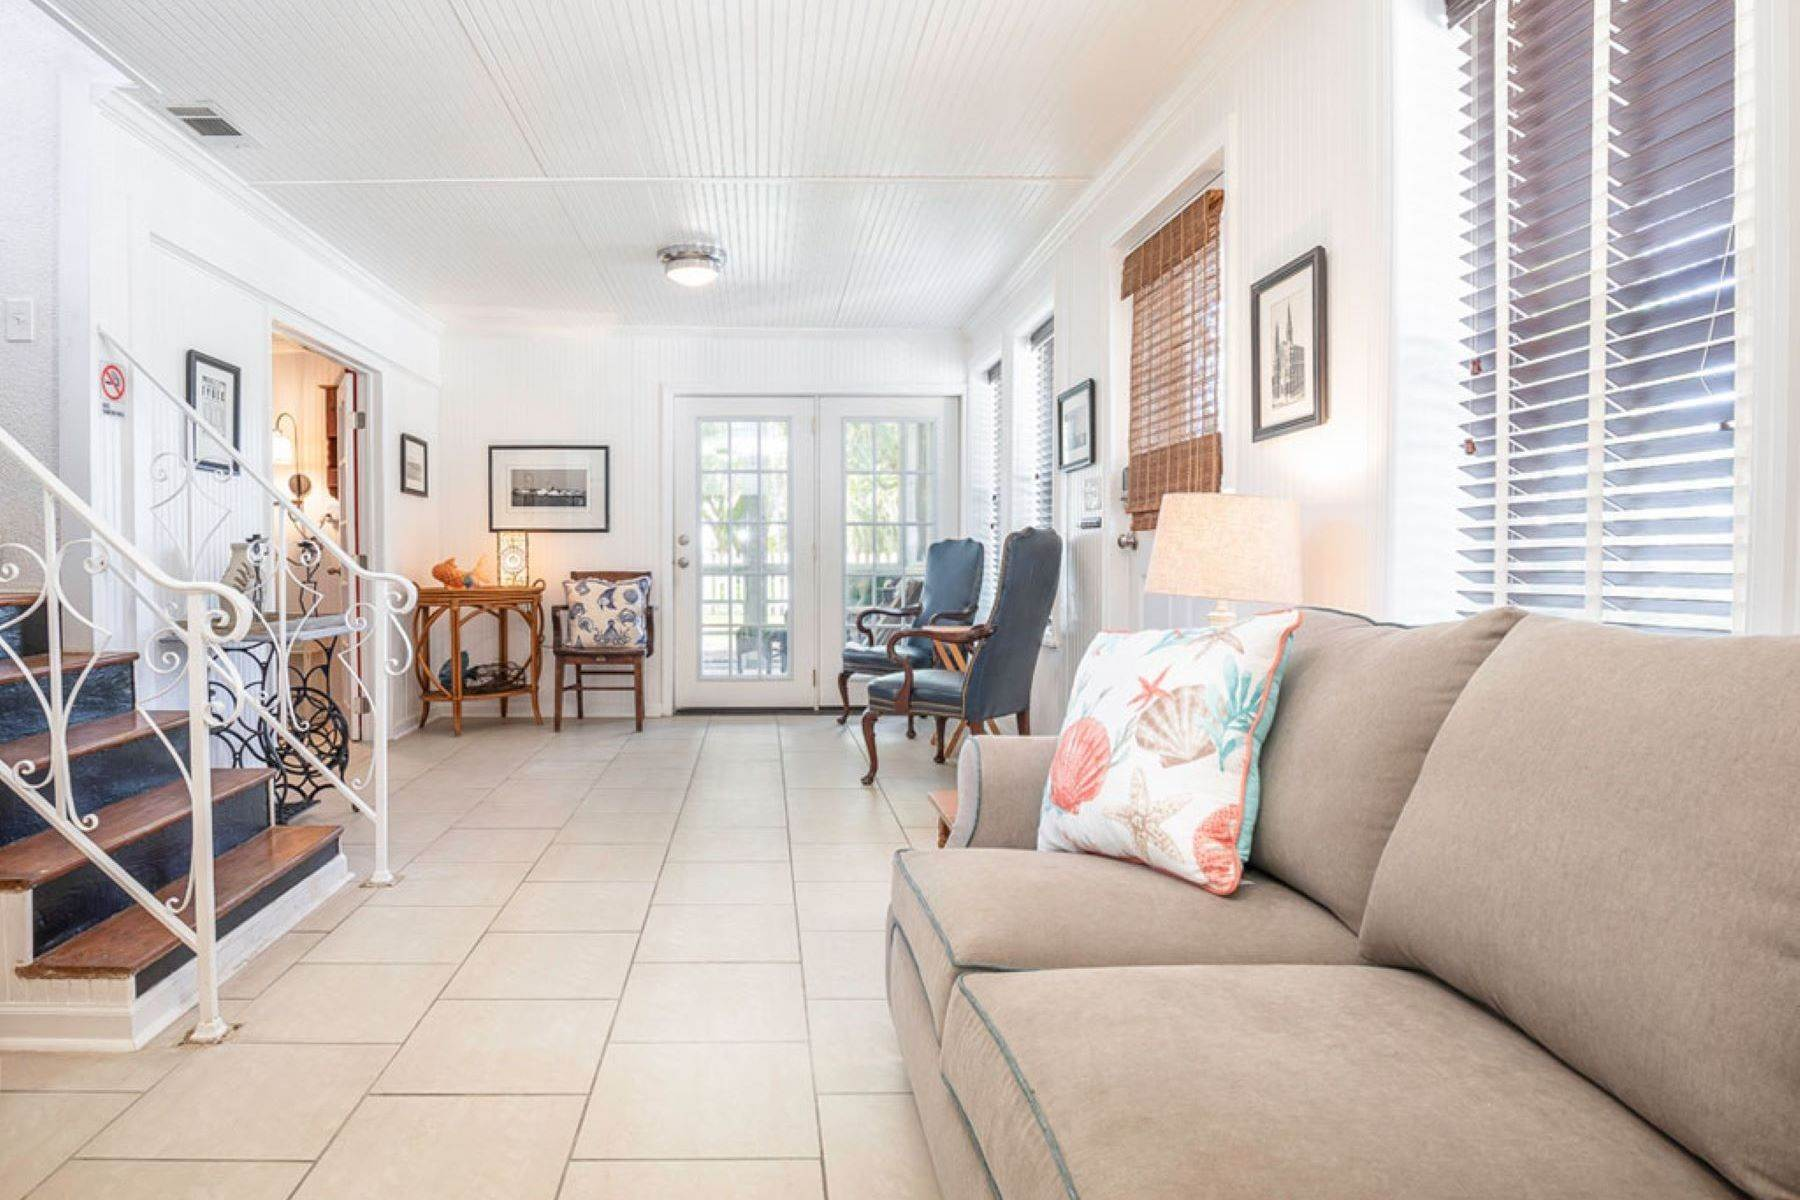 6. Single Family Homes for Sale at The Ultimate Tybee Home With In-Ground Pool And Dock On Tidal Creek 701 13th Street Tybee Island, Georgia 31328 United States